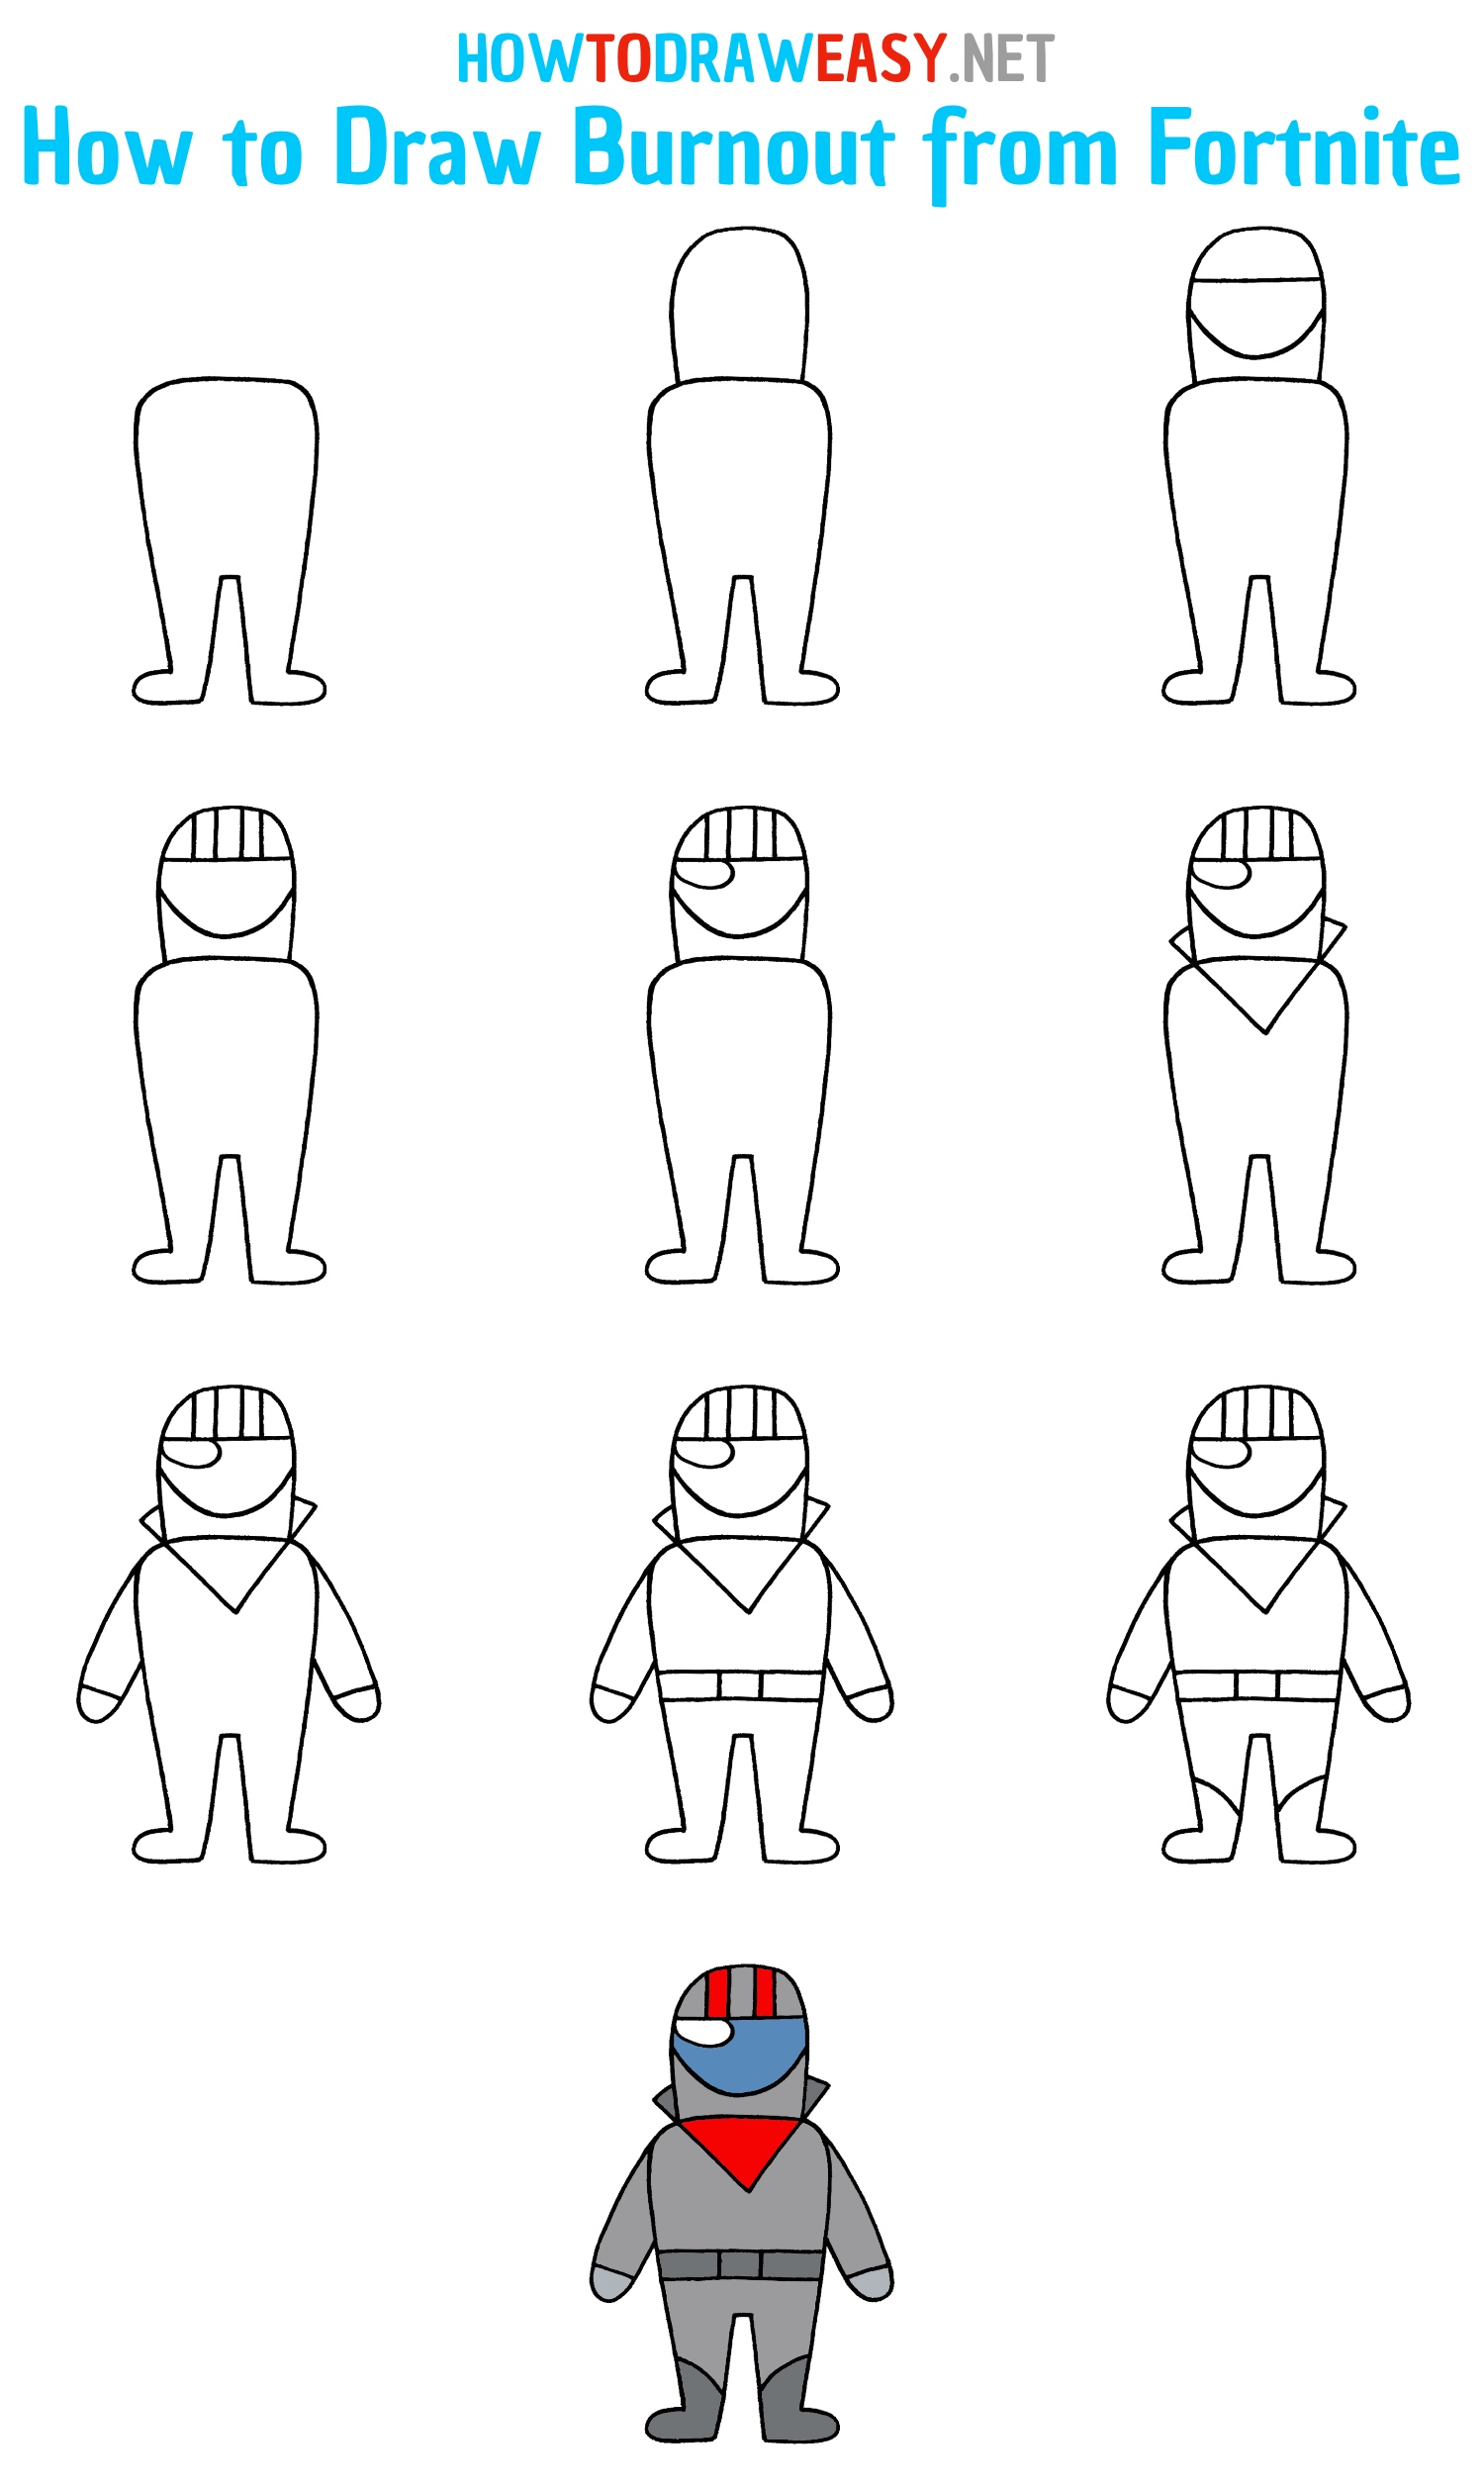 How to Draw Fortnite Character Step by Step